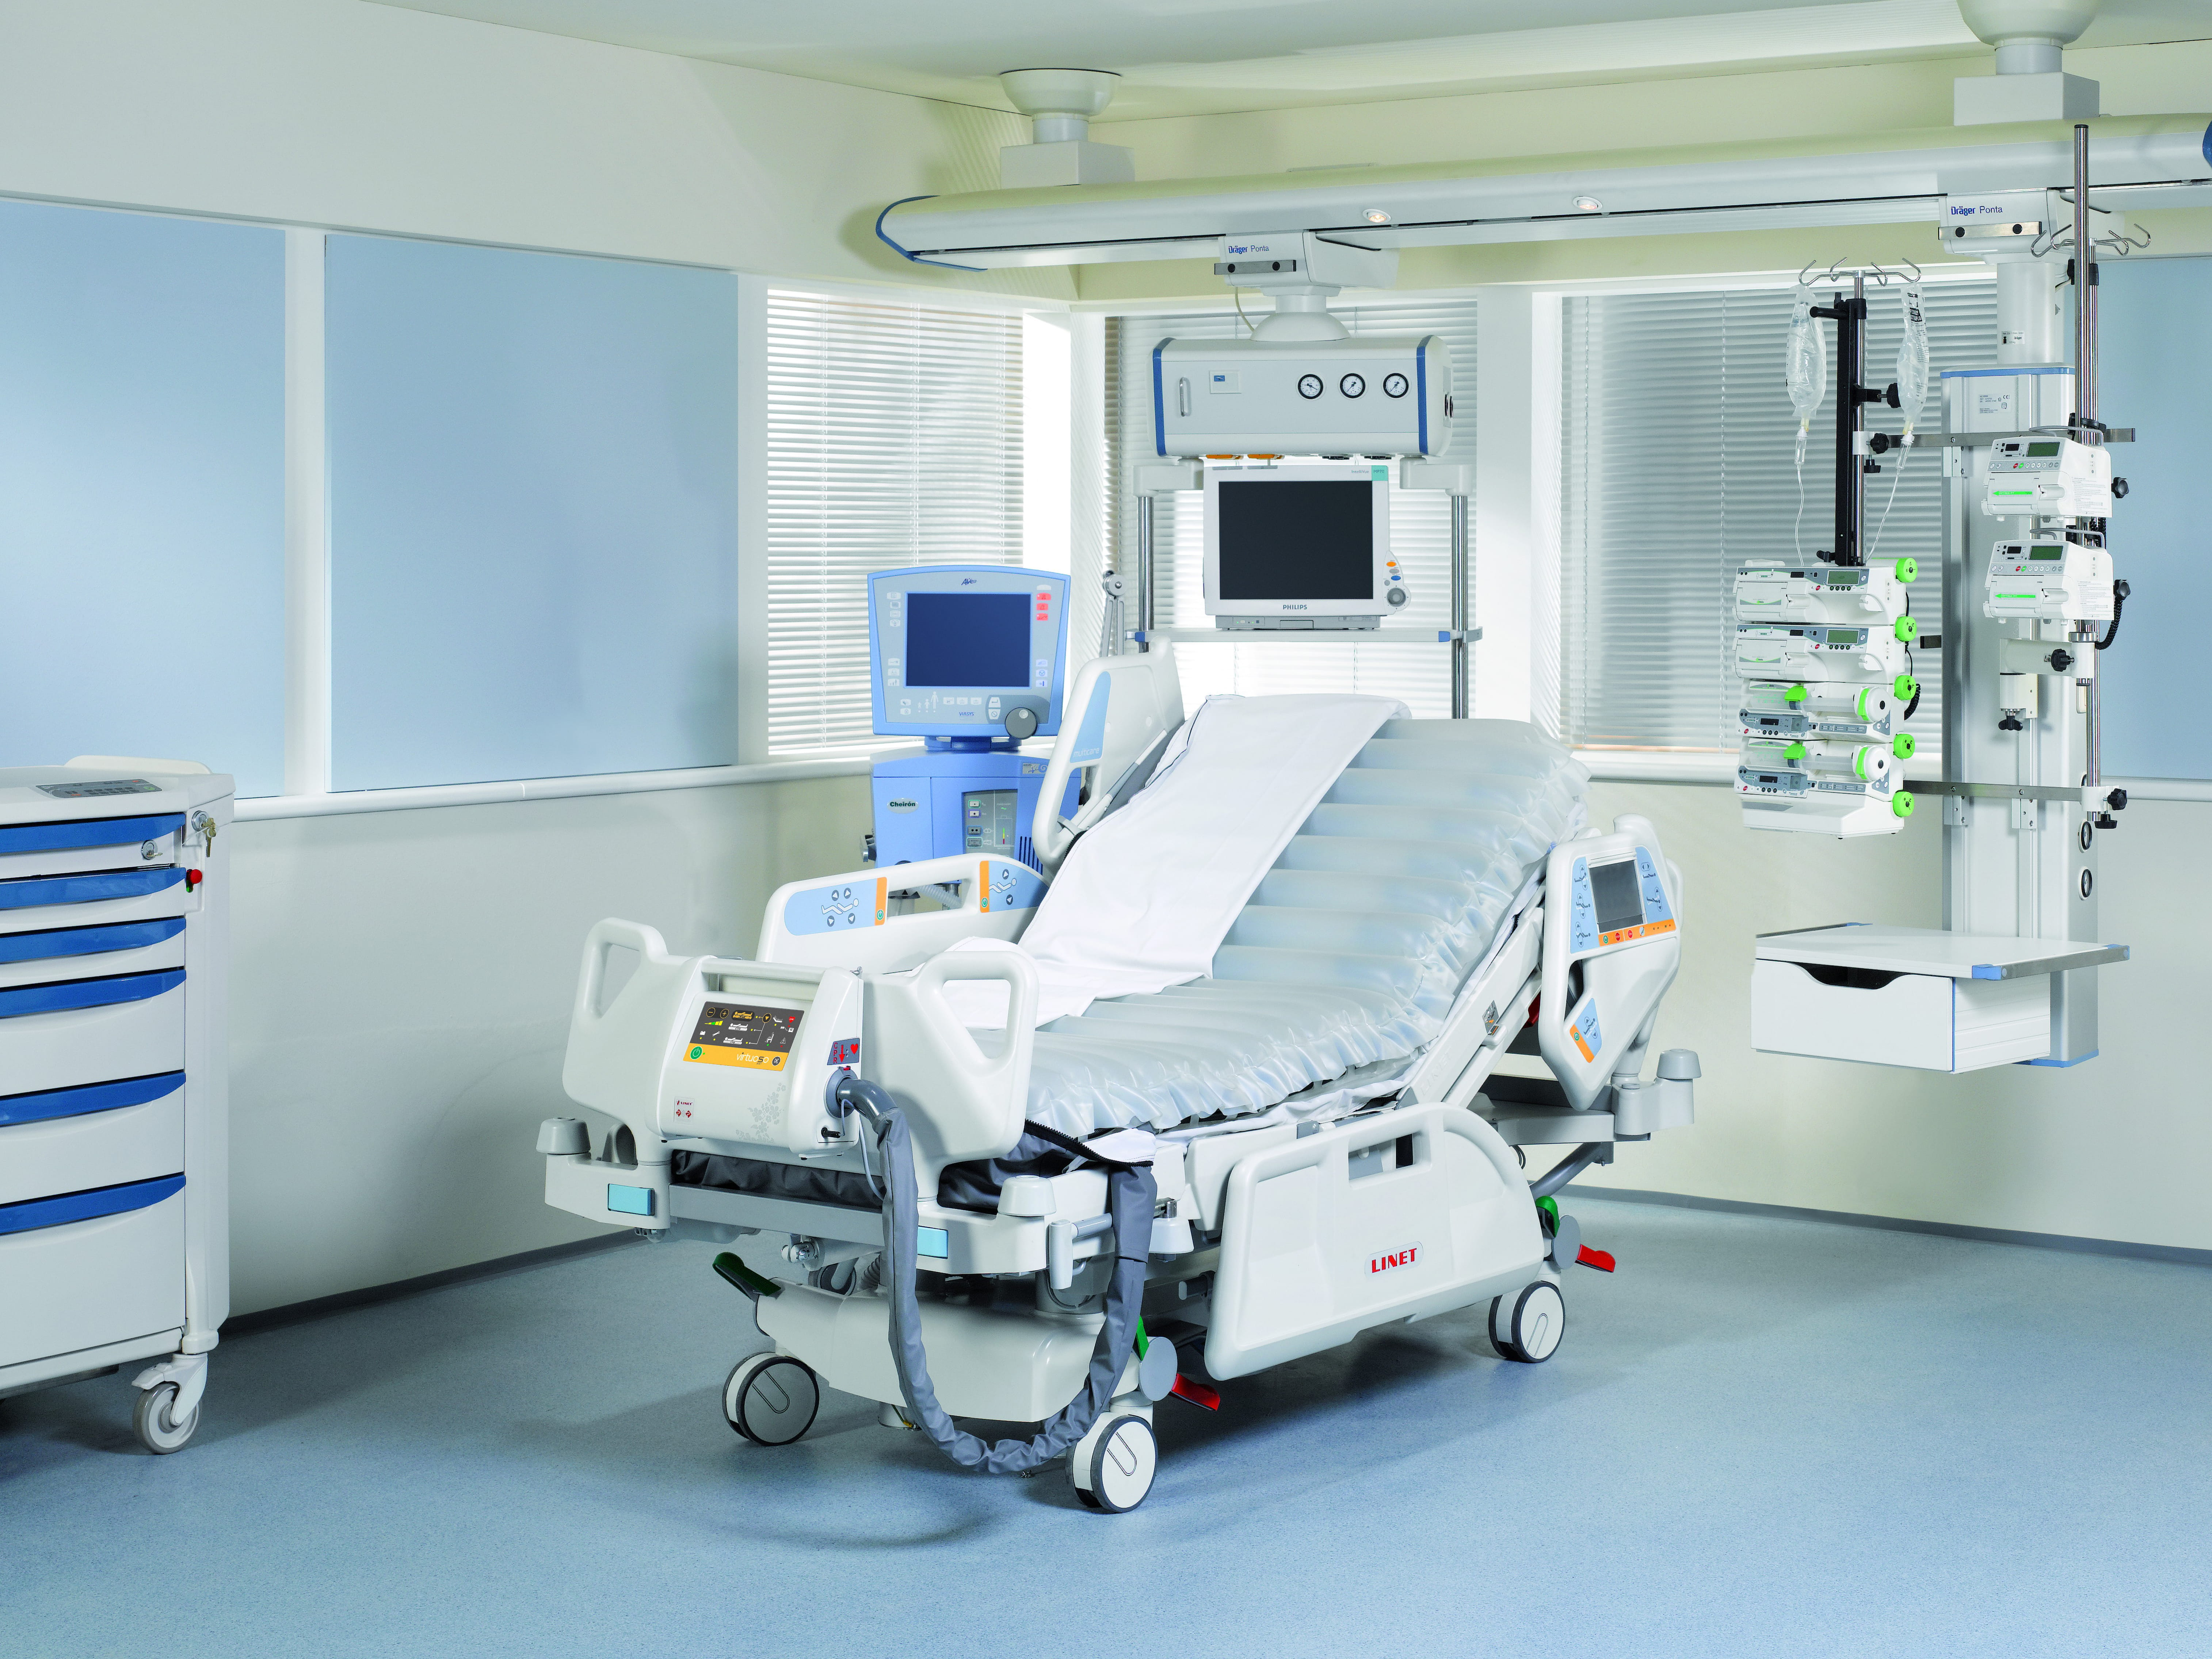 Hospital Mattress Rentals Continue To Gain In Popularity